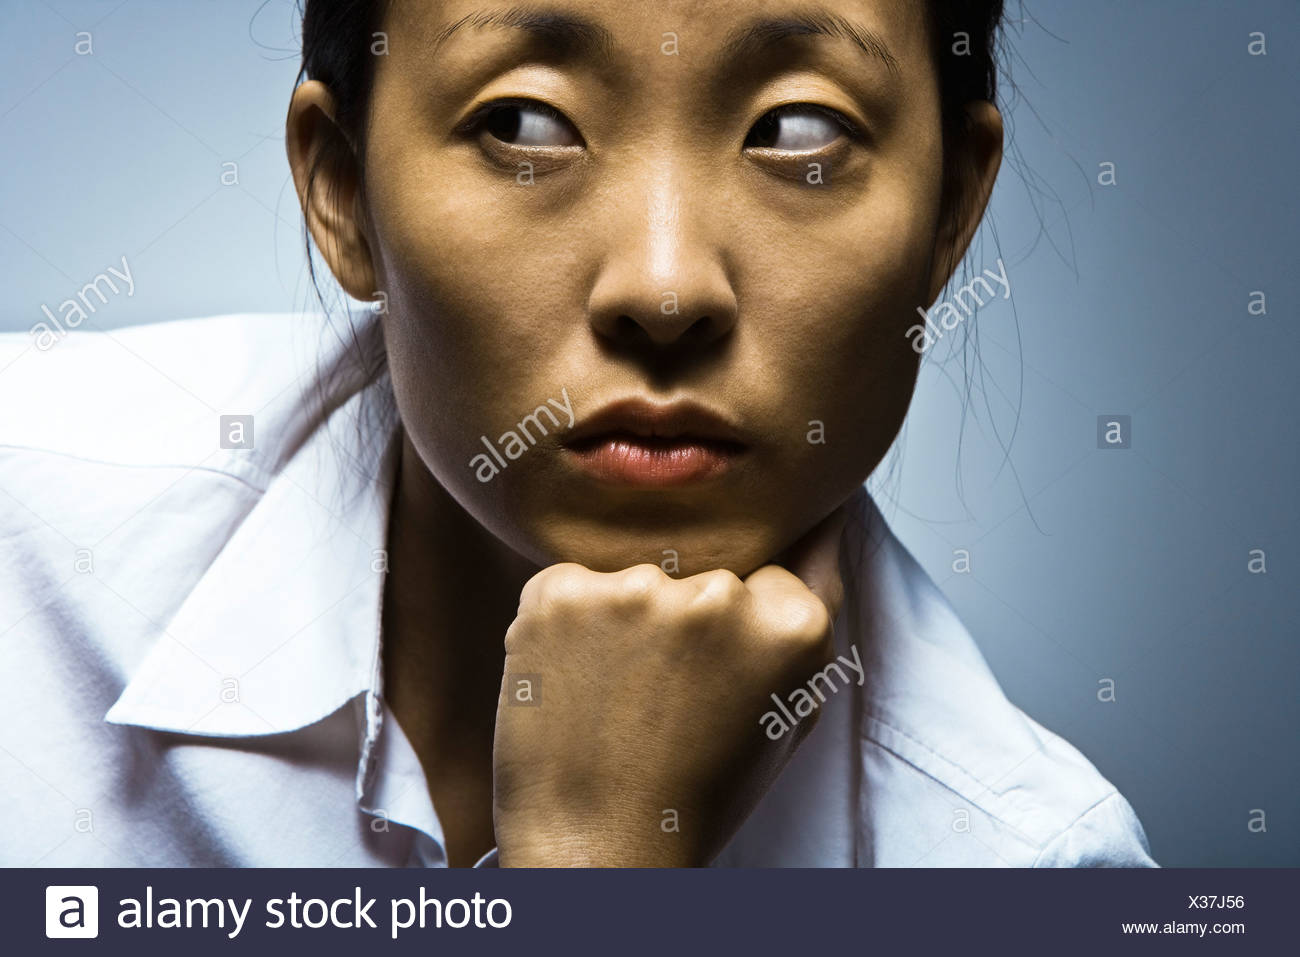 Woman glancing sideways with air of suspicion - Stock Image